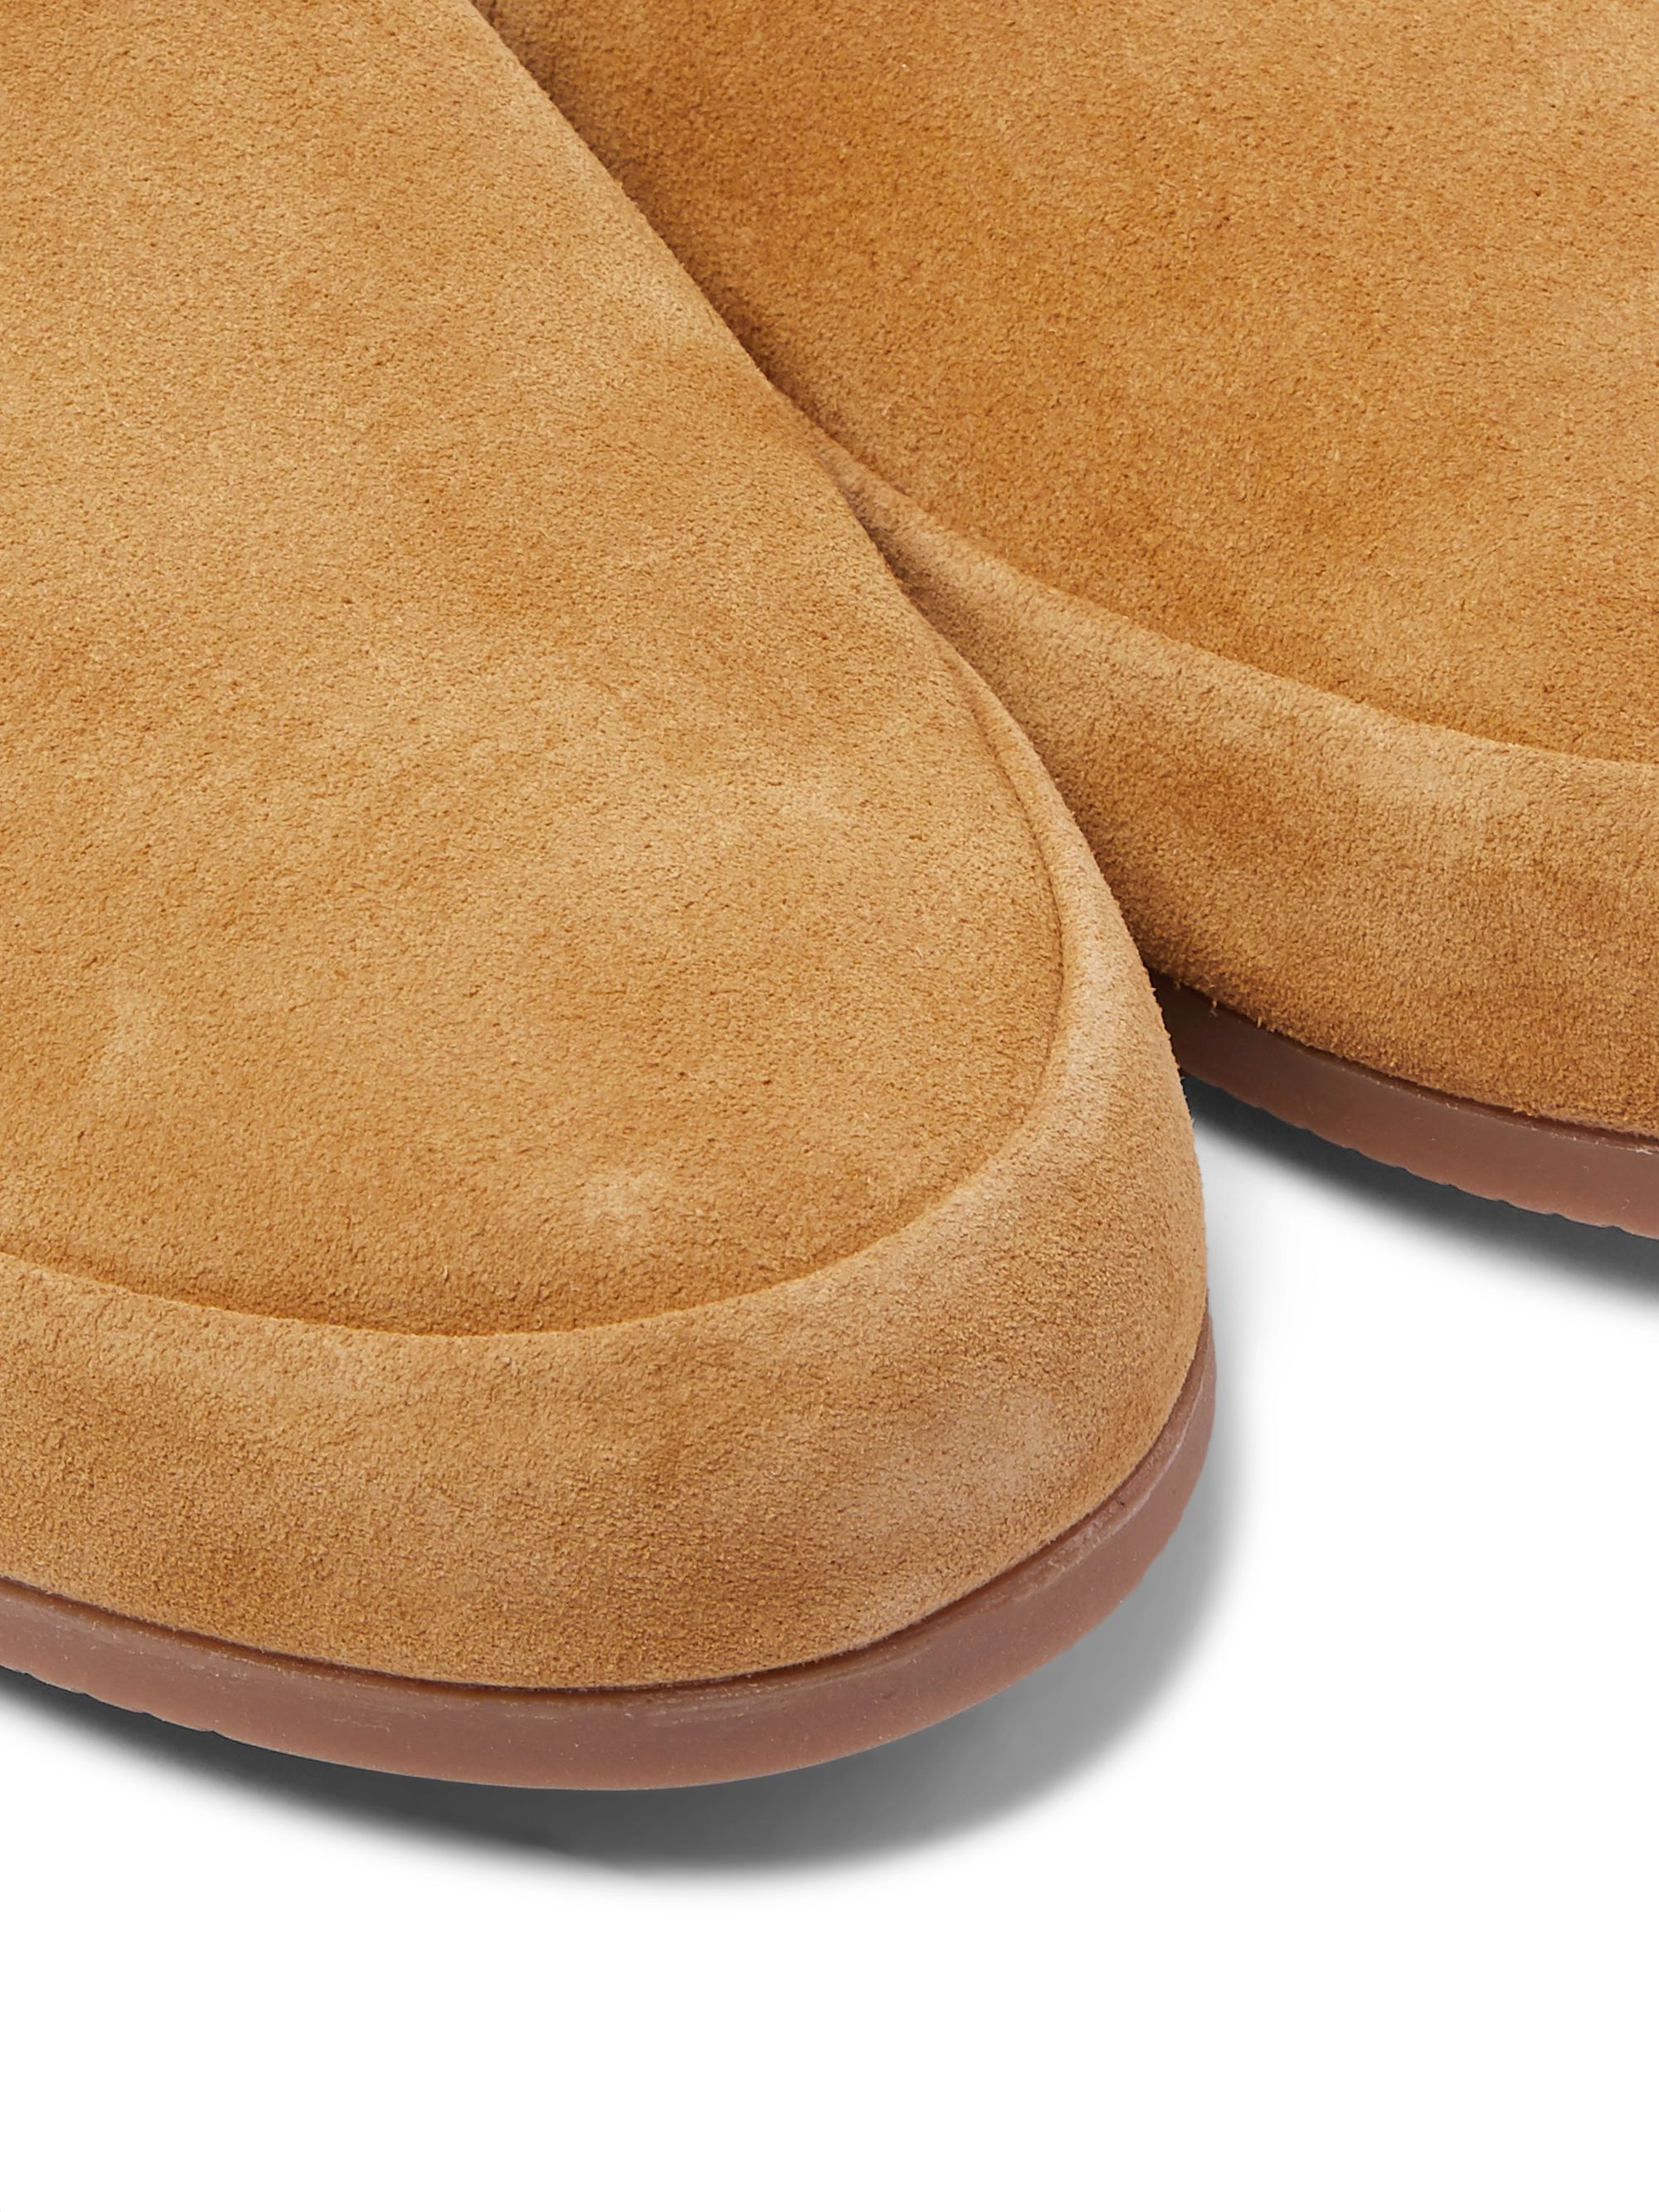 Mulo Suede Backless Slippers